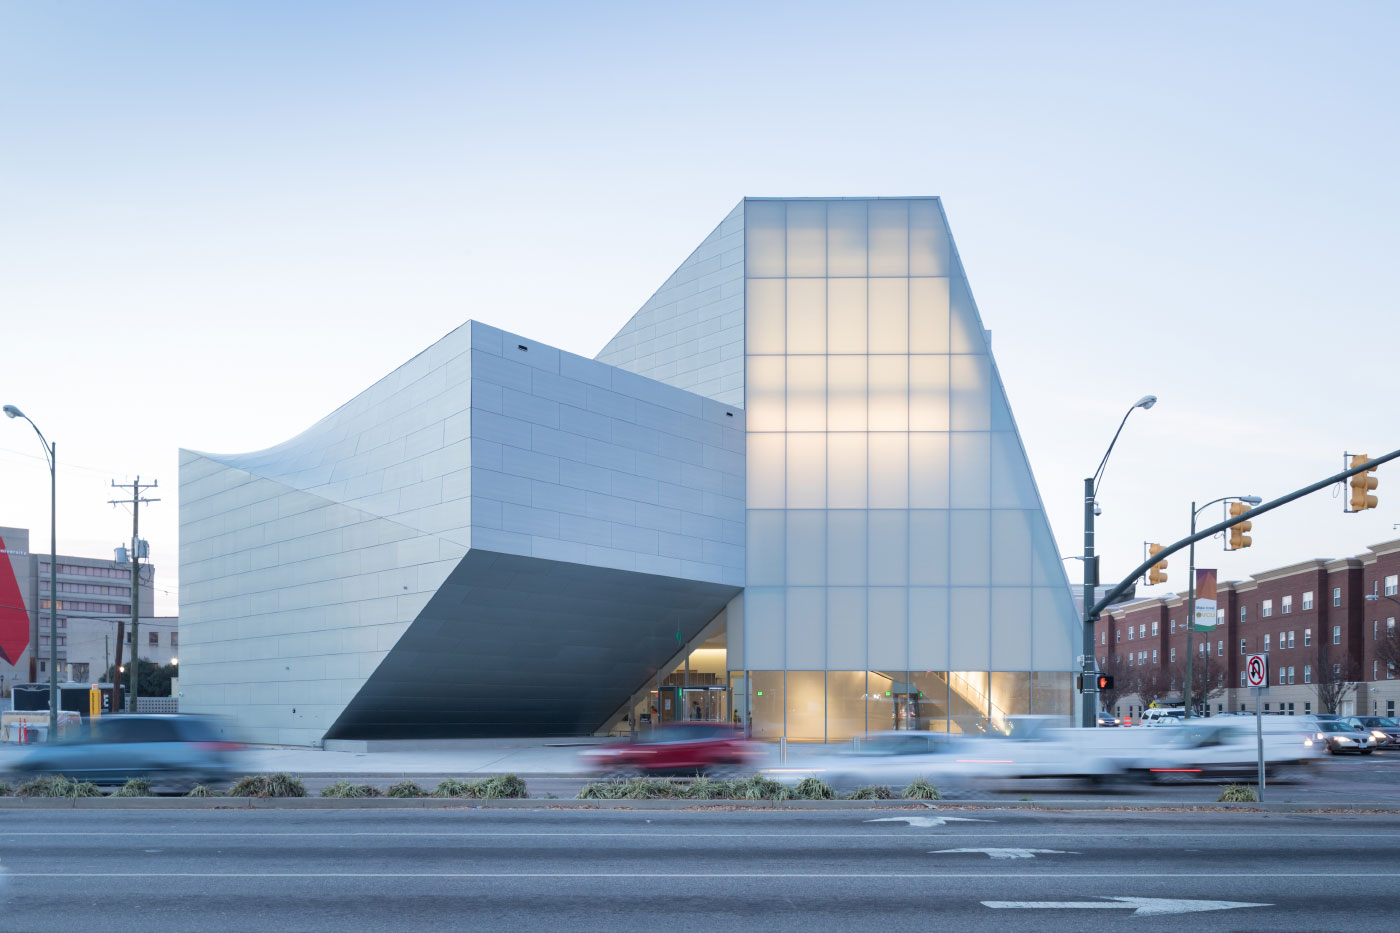 View of the Institute for Contemporary Art at VCU Belvidere Street entrance at dusk. (Iwan Baan)